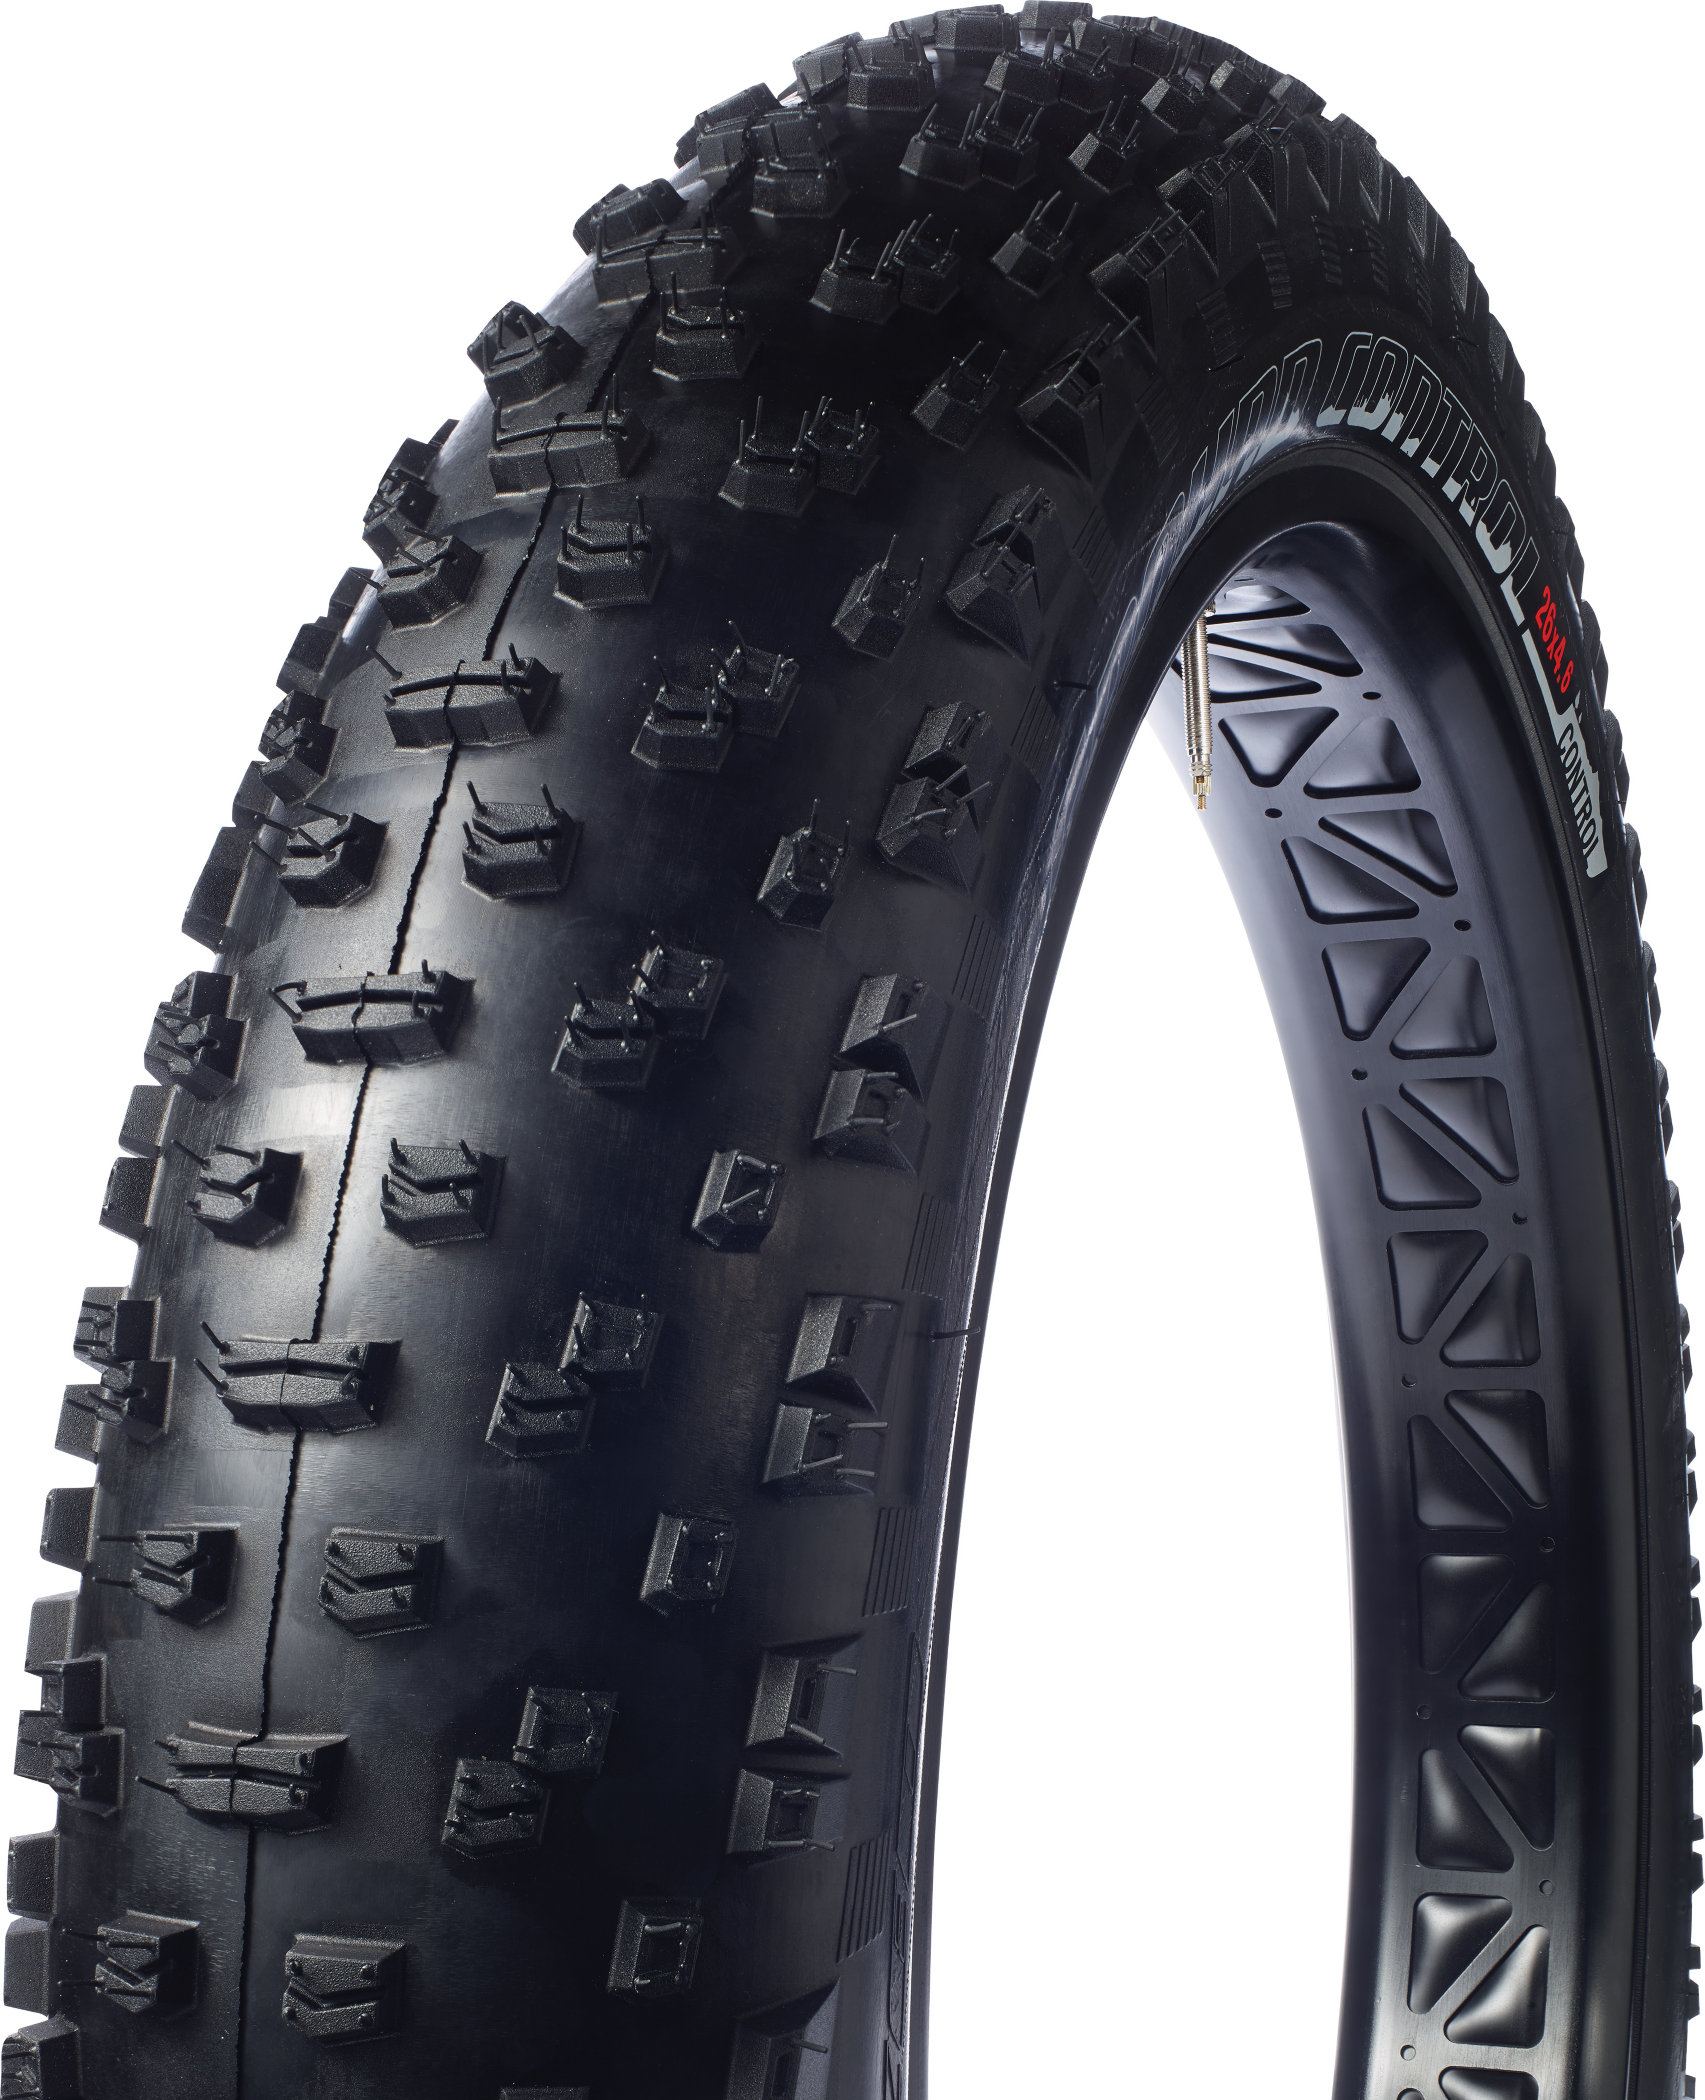 SPECIALIZED GROUND CONTROL SPORT TIRE 24X4.0 - SPECIALIZED GROUND CONTROL SPORT TIRE 24X4.0